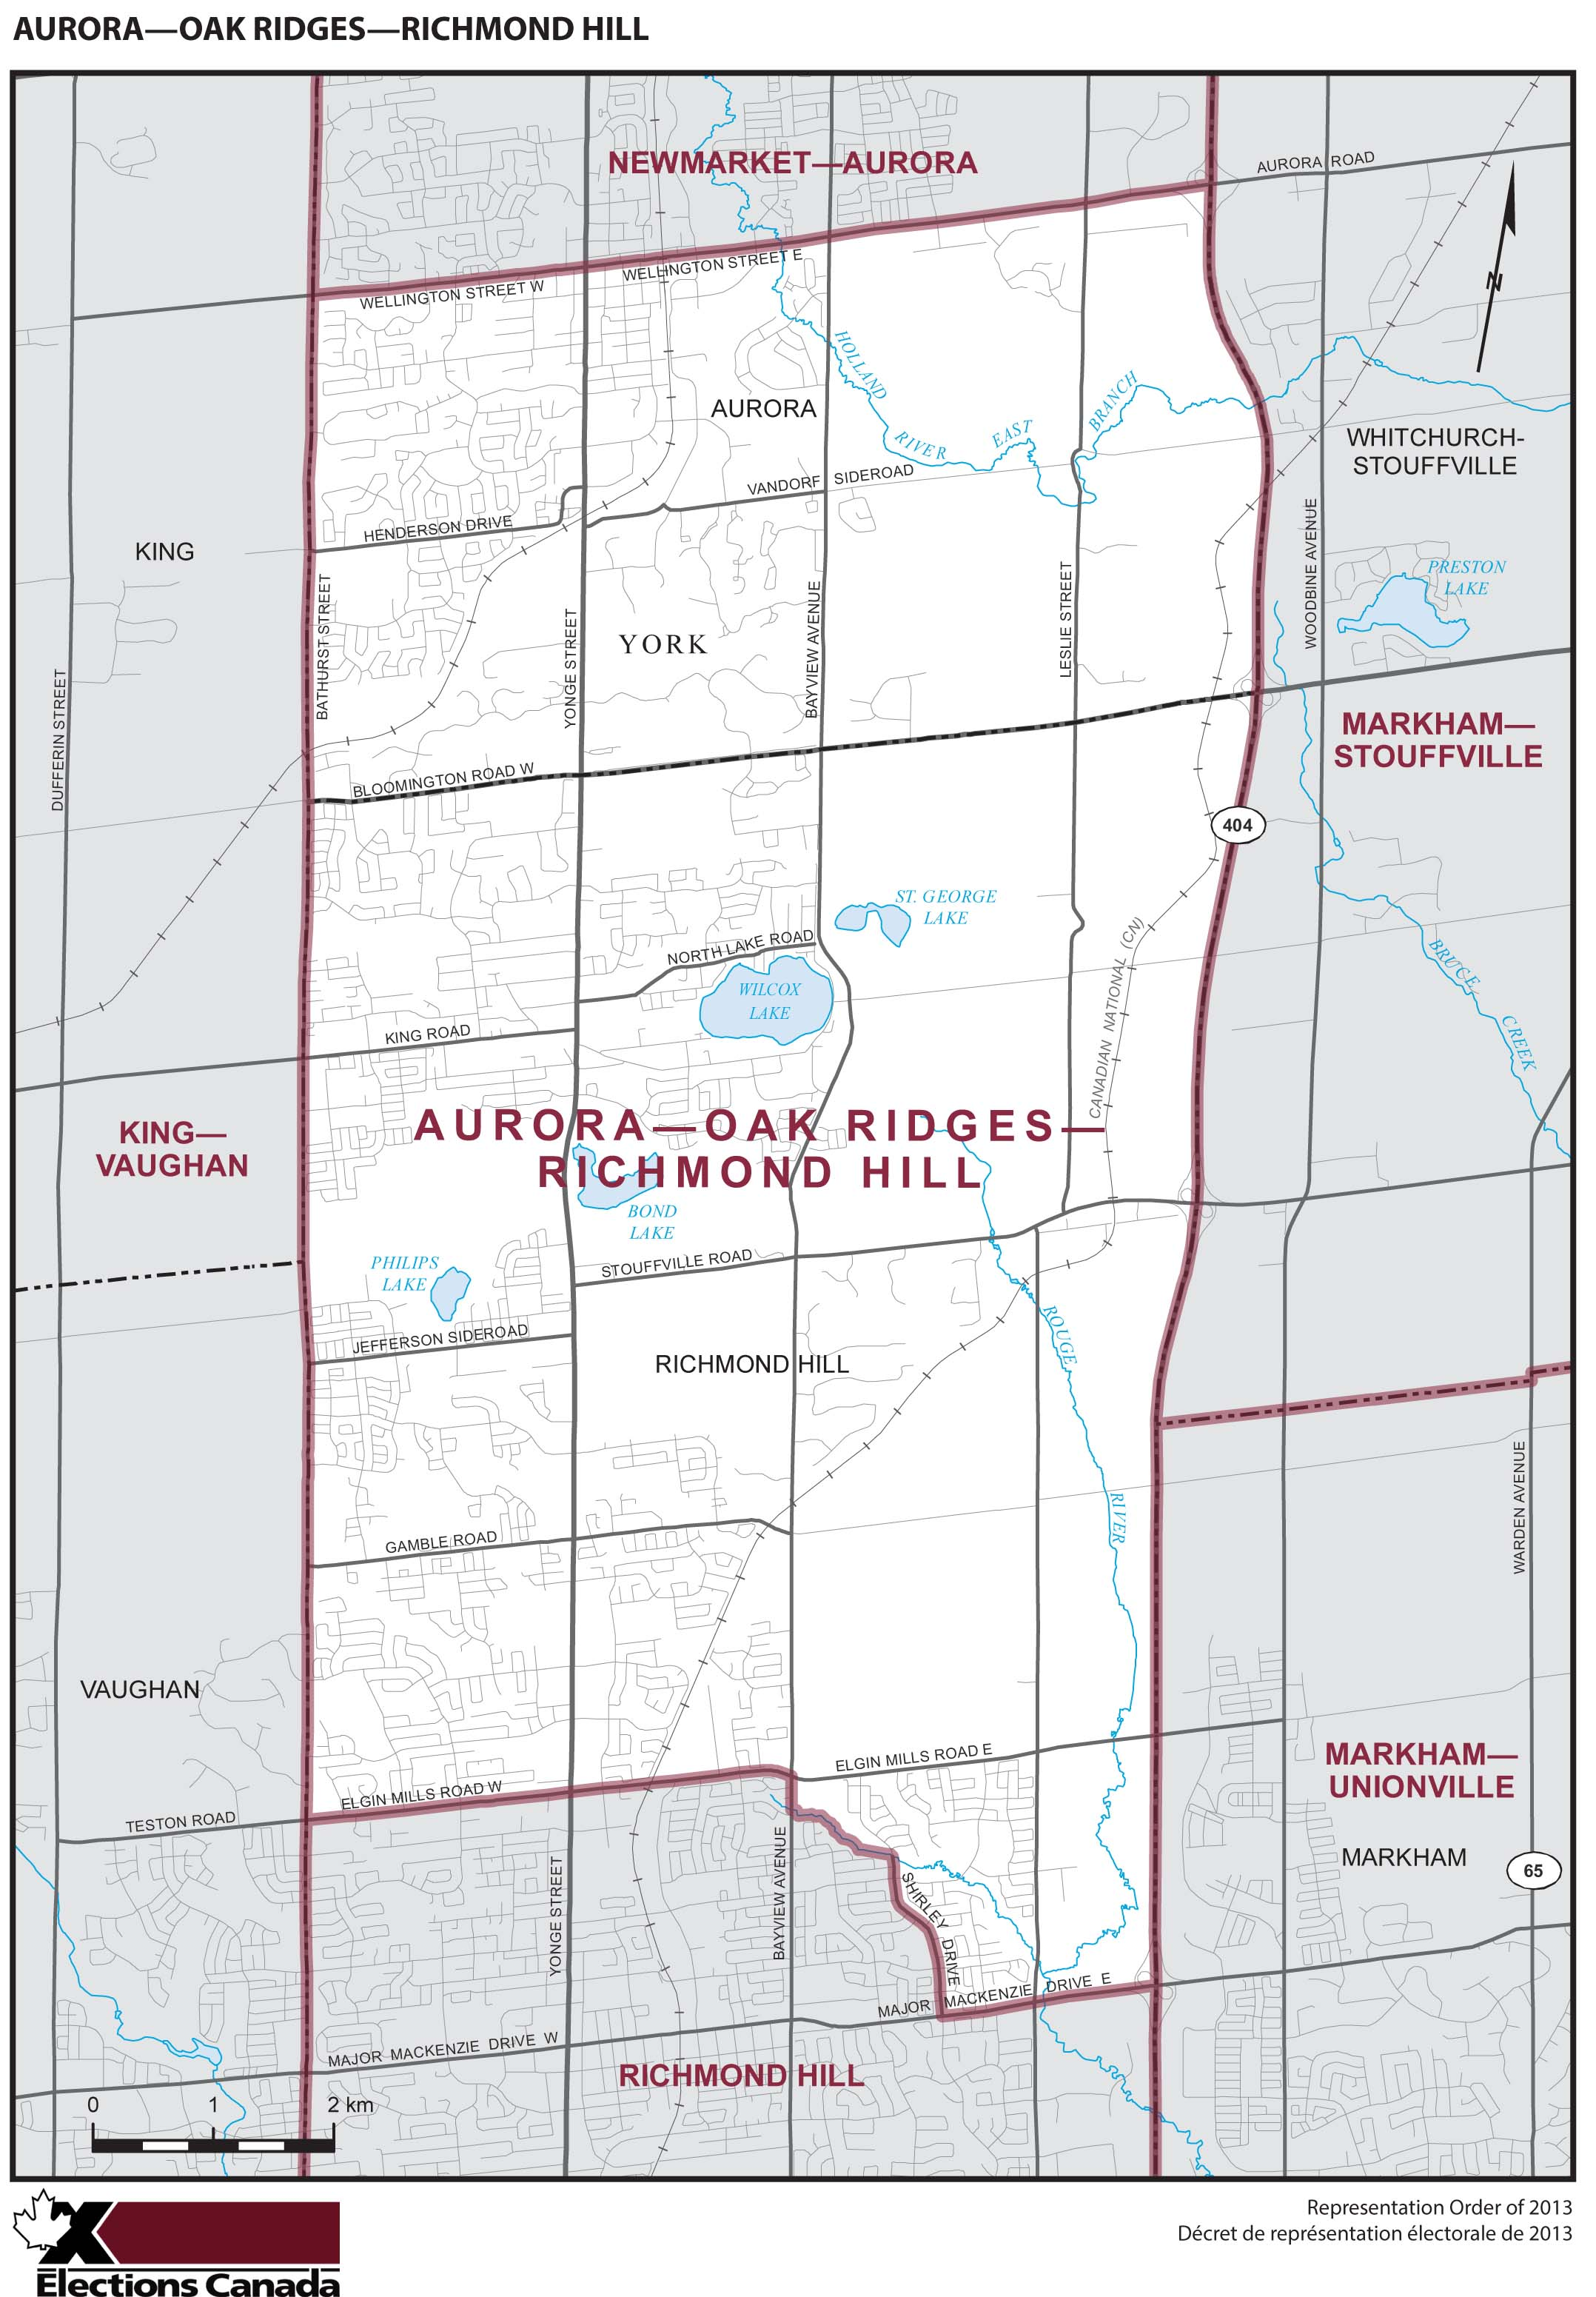 Map: Aurora--Oak Ridges--Richmond Hill, Federal electoral district, 2013 Representation Order (in white), Ontario